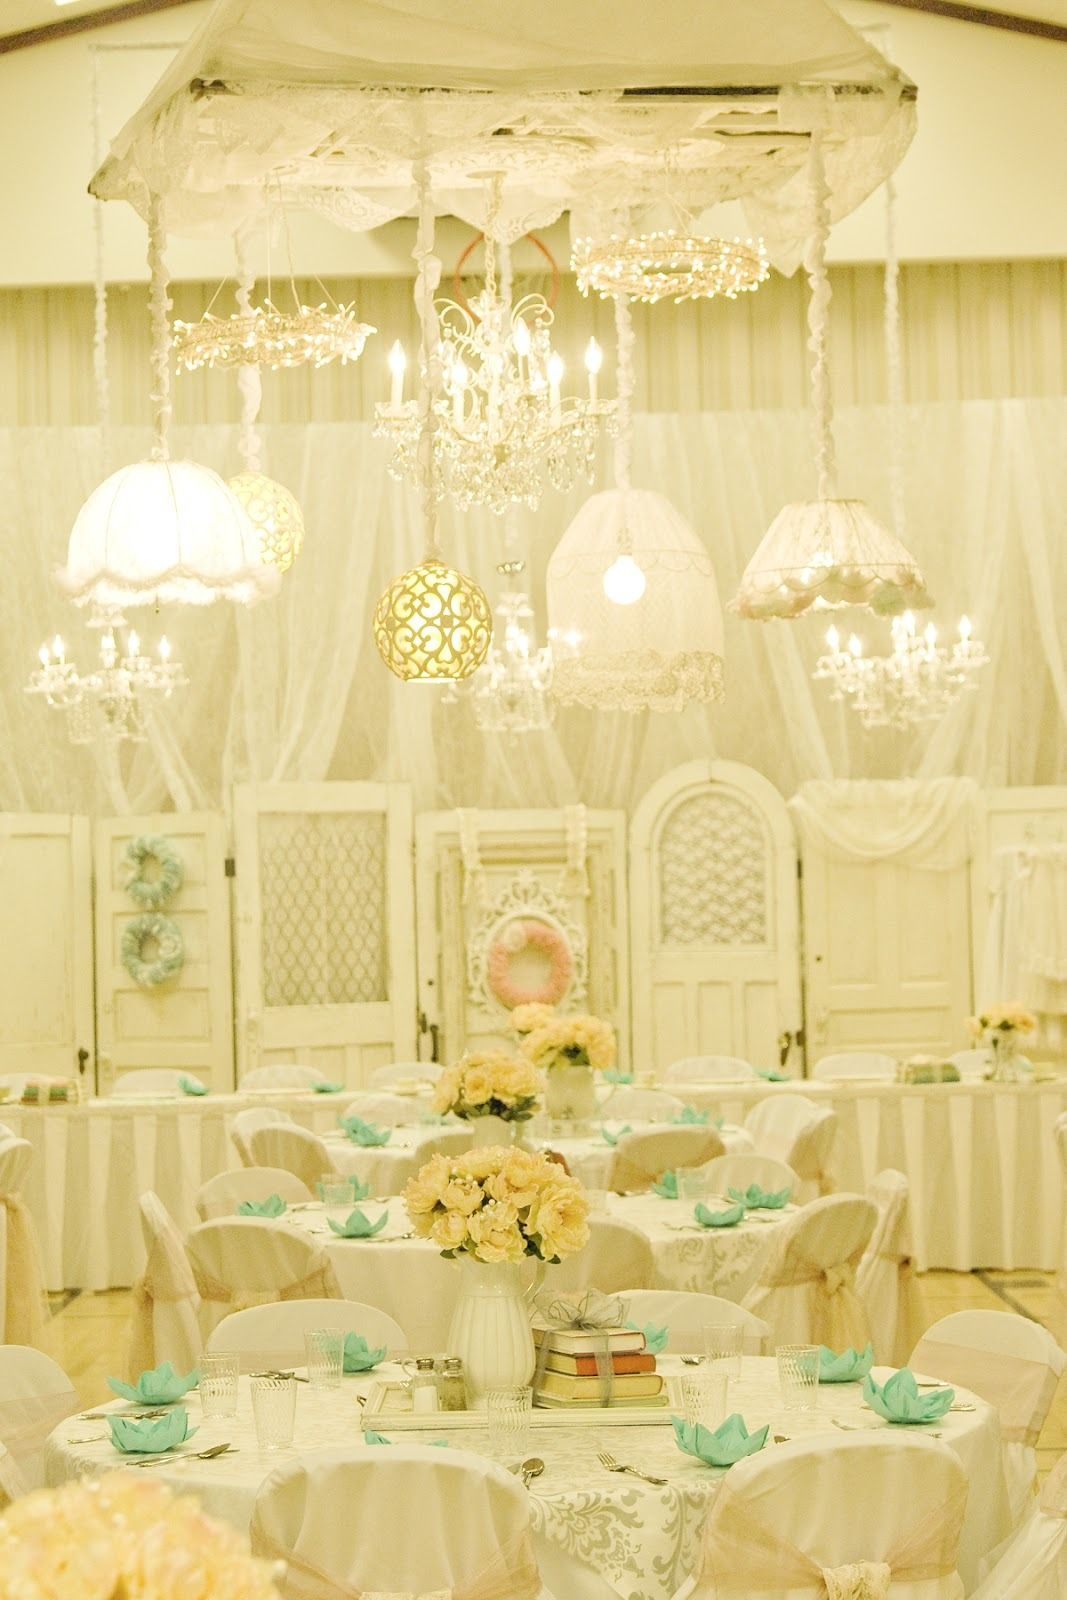 Super Elegant Cultural Hall Wedding Decorations | Hall decorations ...